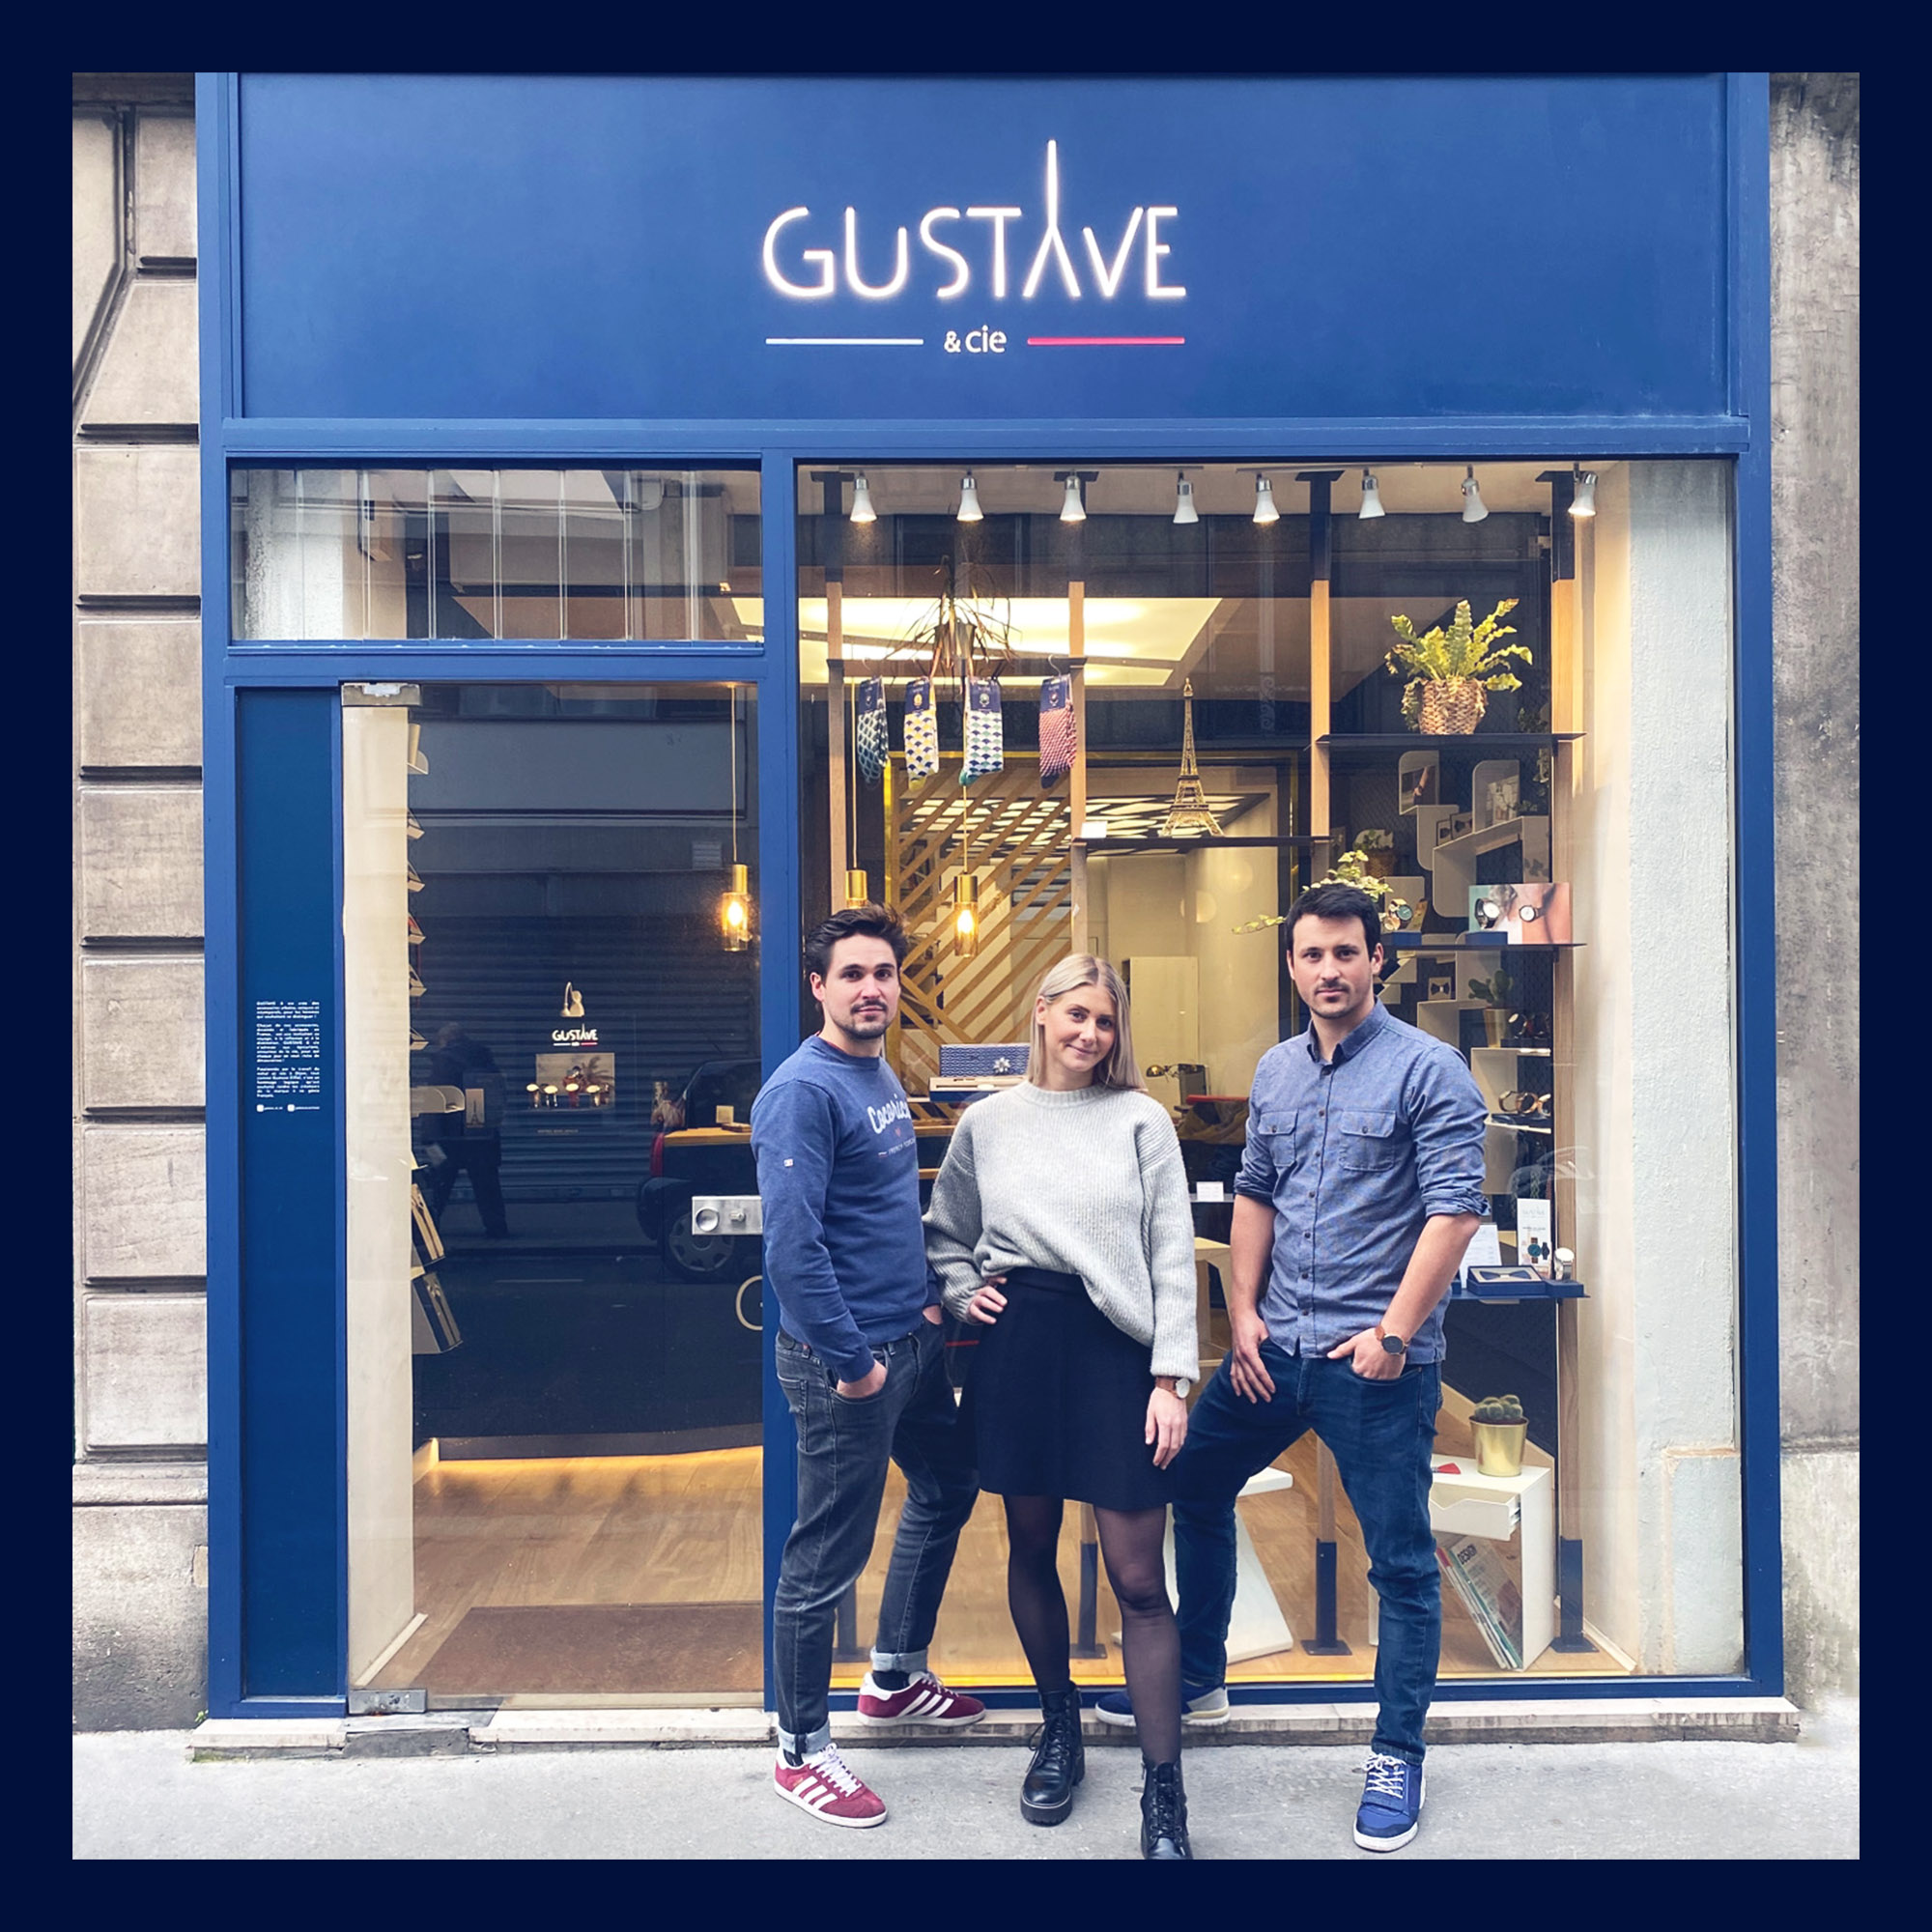 , GUSTAVE & # 038; cie & # 8211; 24h watches 12h and fashion accessories Made in France, GUSTAVE & amp; cie, GUSTAVE & amp; cie